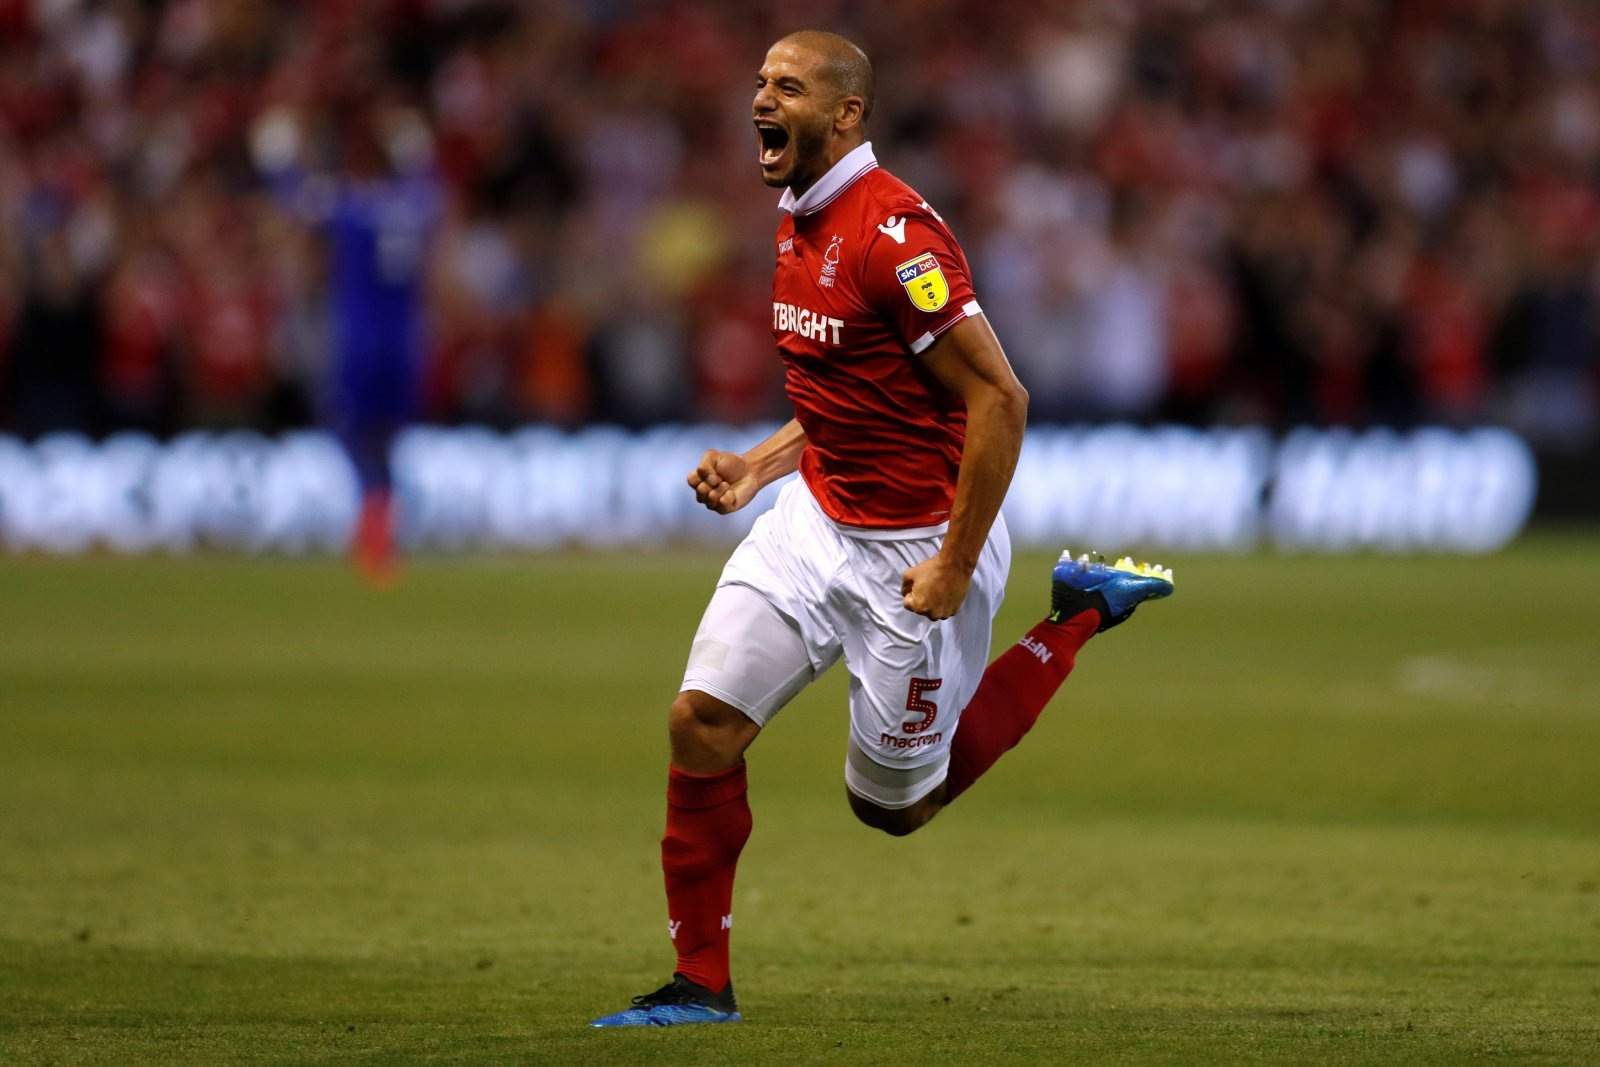 Adlène Guedioura's performance last night delighted Nottingham Forest fans